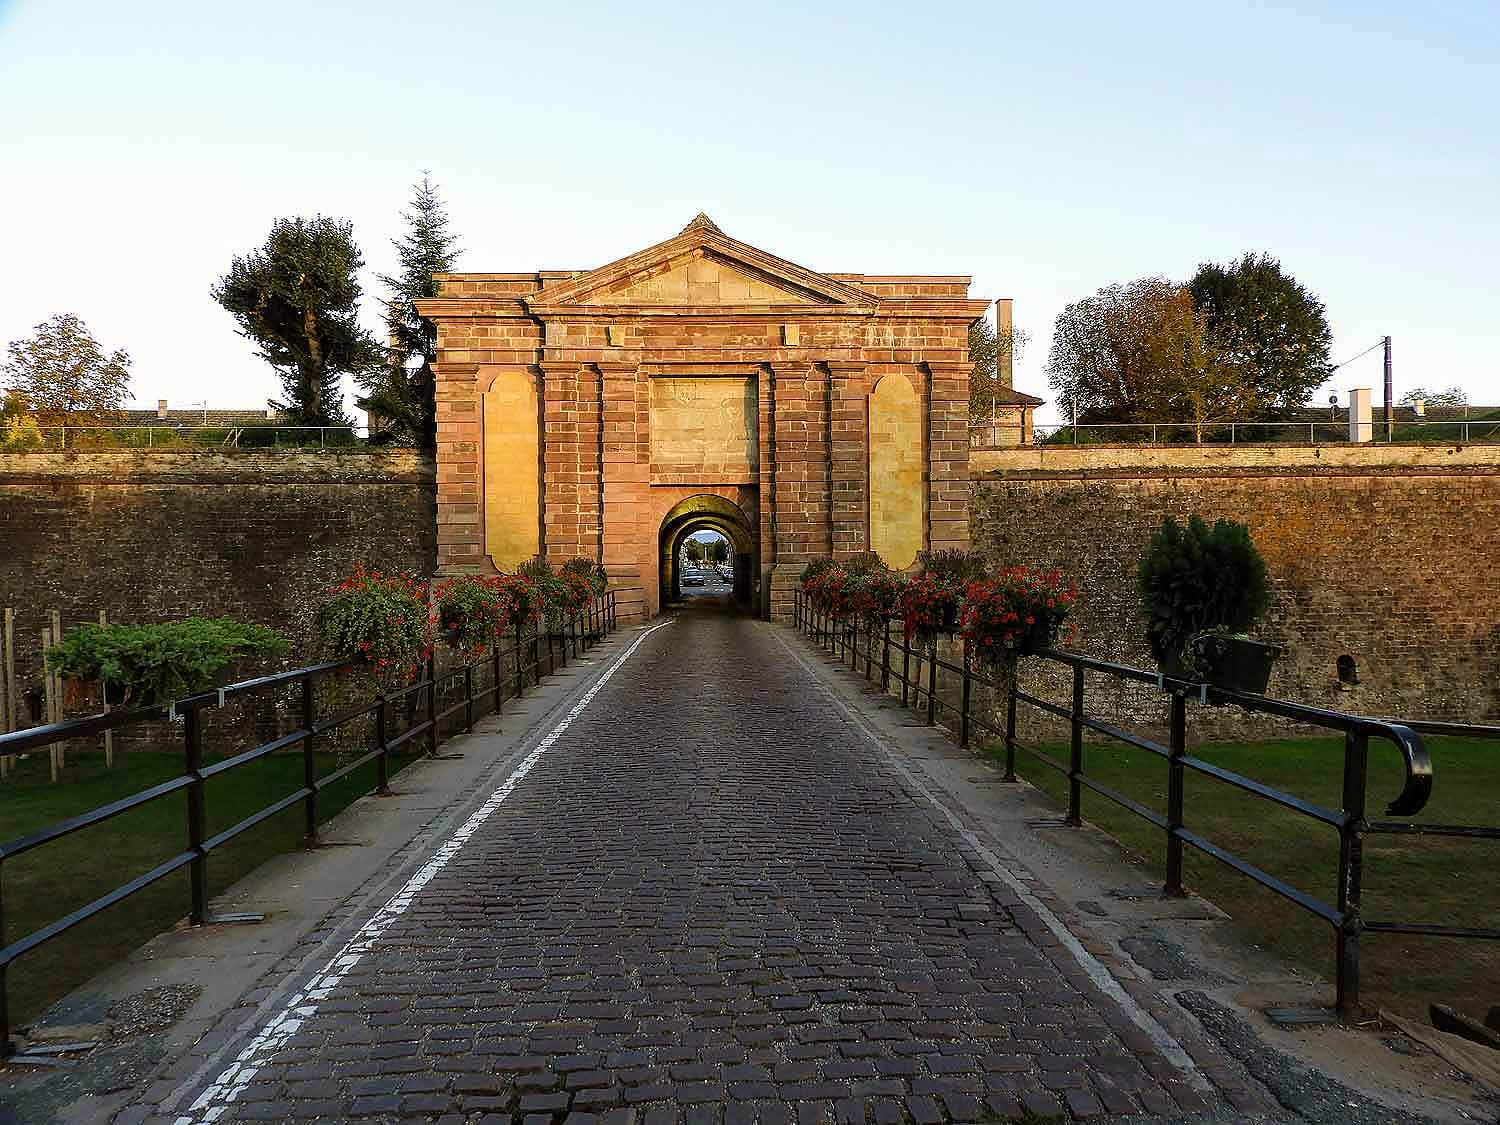 france-neuf-brisach-fortified-town-gates.jpg